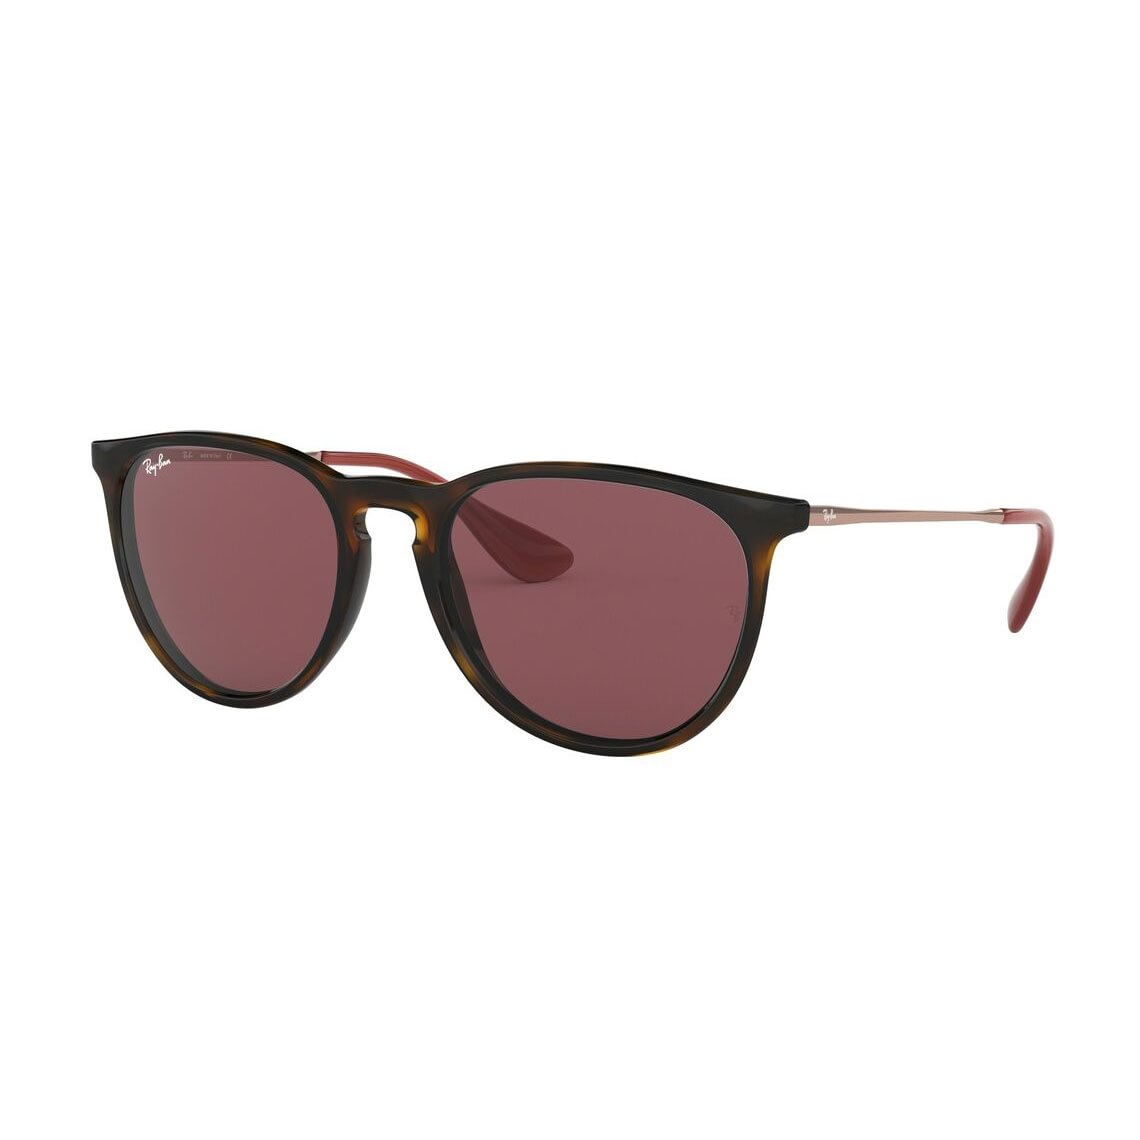 Ray-Ban Erika Color Mix RB4171 639175 5418